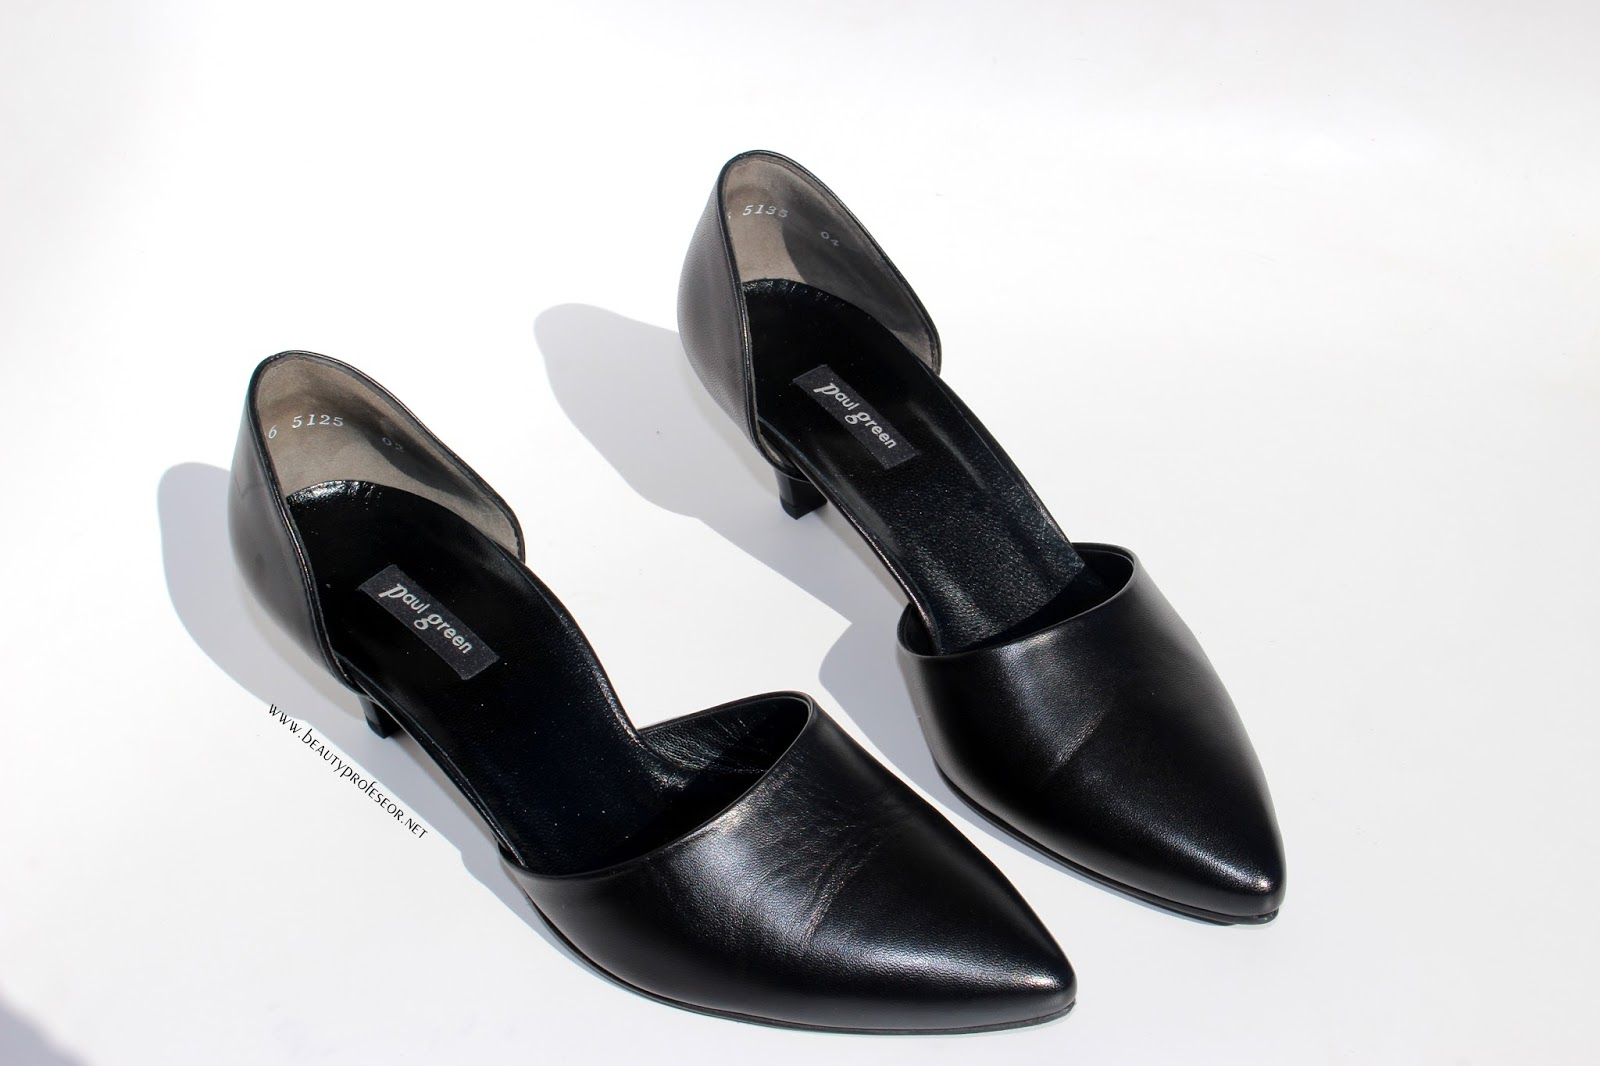 0593332f310 This slim pair of near-flats--which run true to size--have soft and supple  leather and a darling kitten heel...all at once chic and vintage